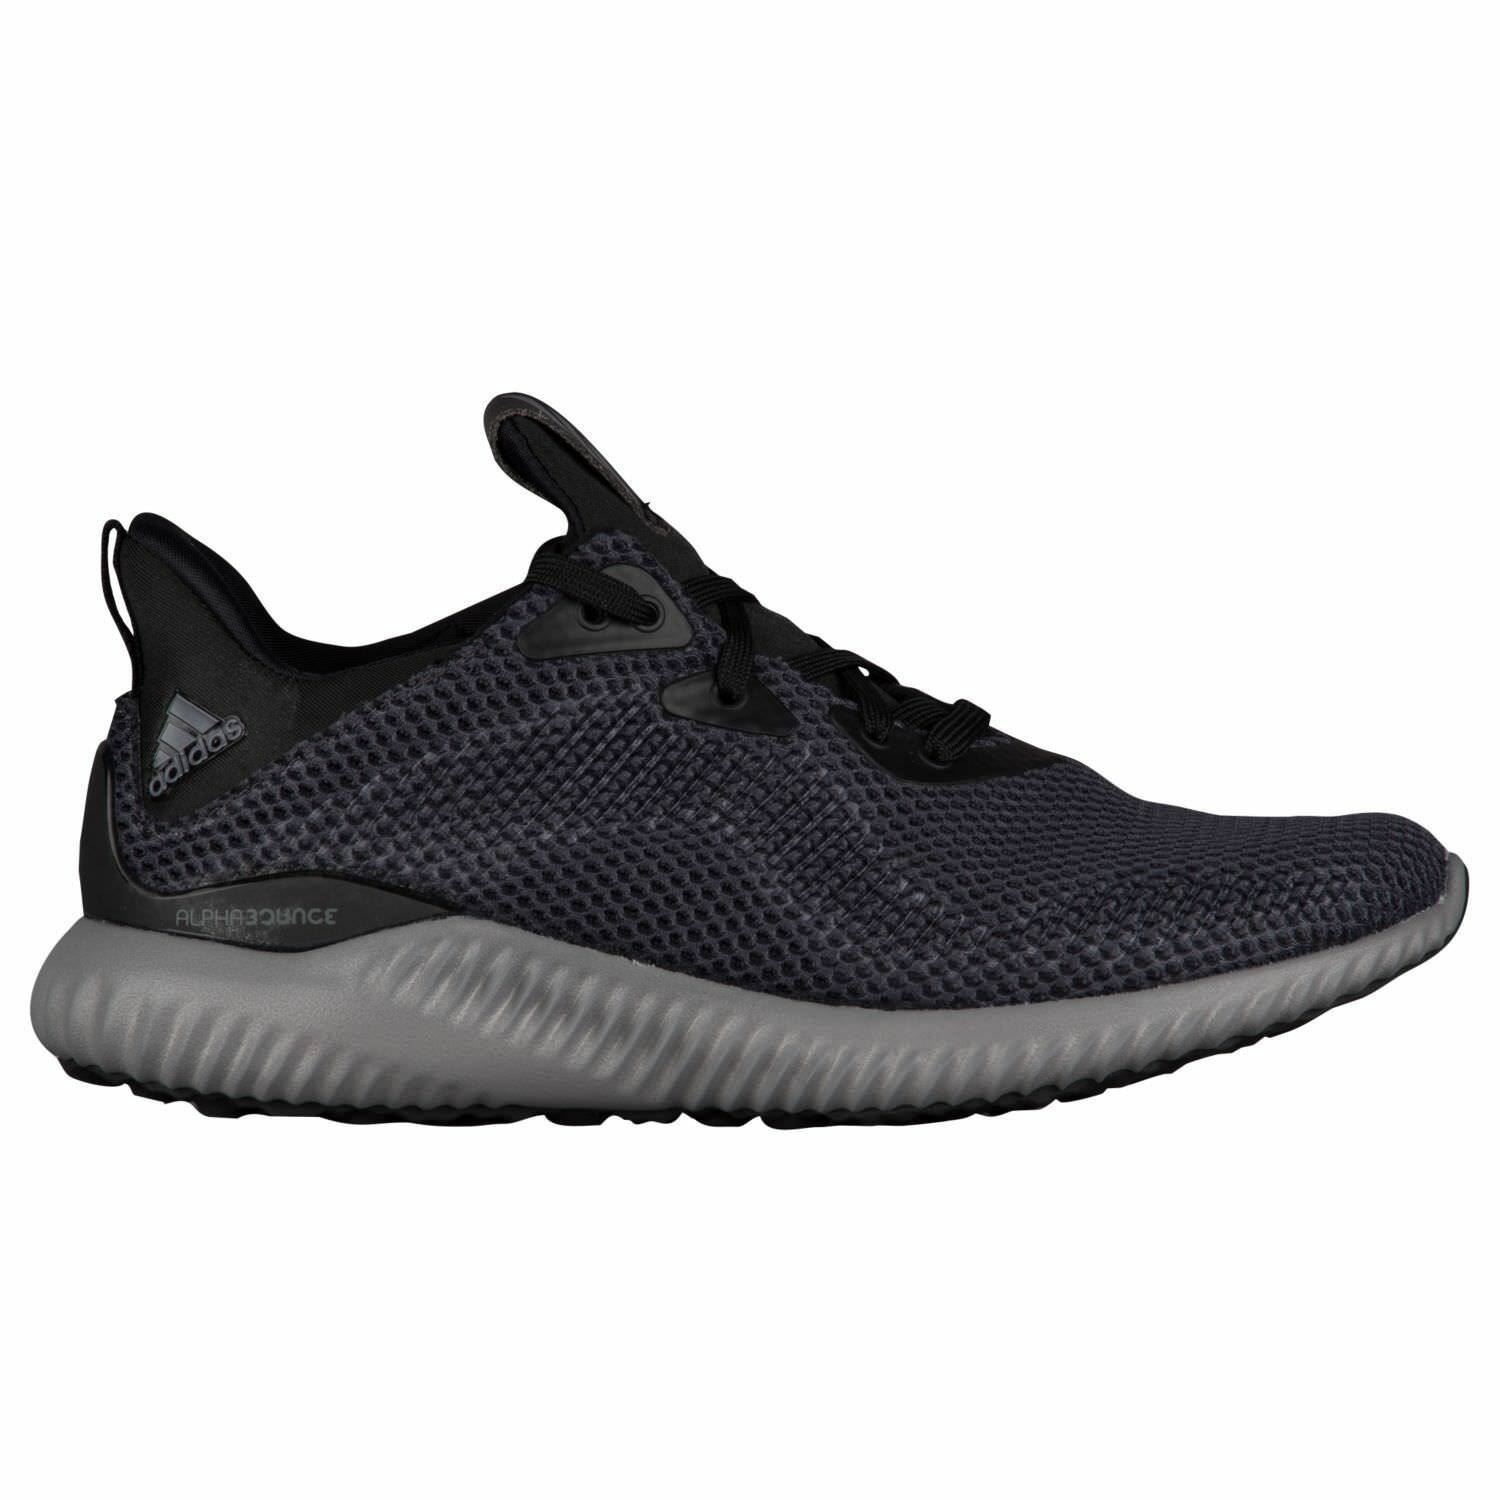 NEW WOMENS ADIDAS ALPHABOUNCE 1 SNEAKERS CG5400-MULTIPLE SIZES